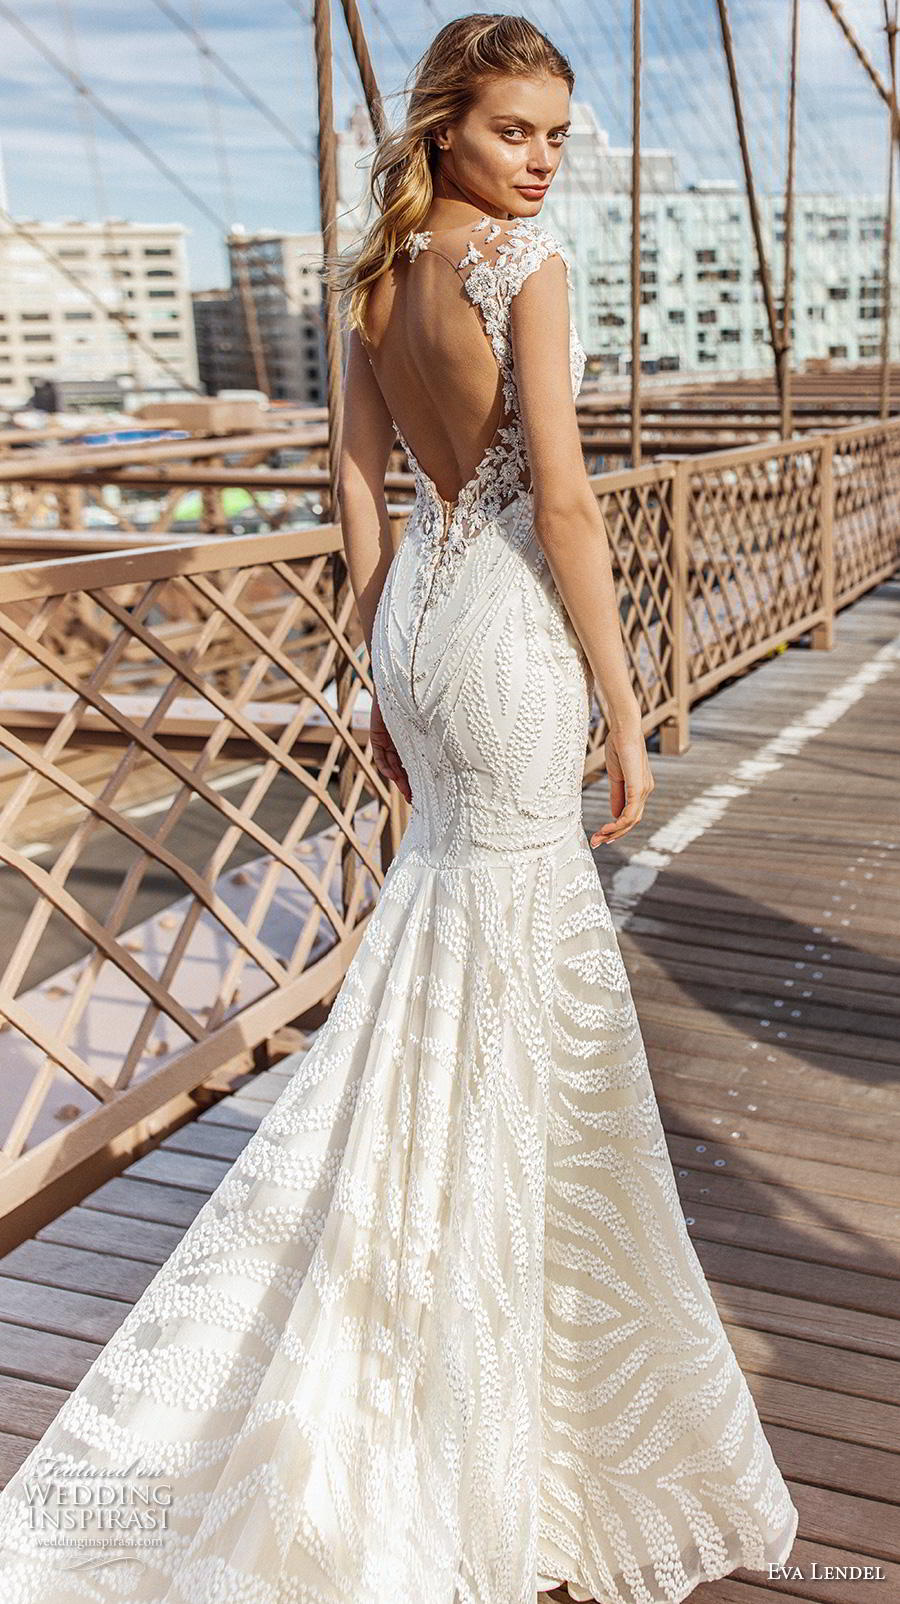 eva lendel 2019 bridal cap sleeves illusion bateau v neck full embellishment elegant trumpet wedding dress keyhole back chapel train (6) bv